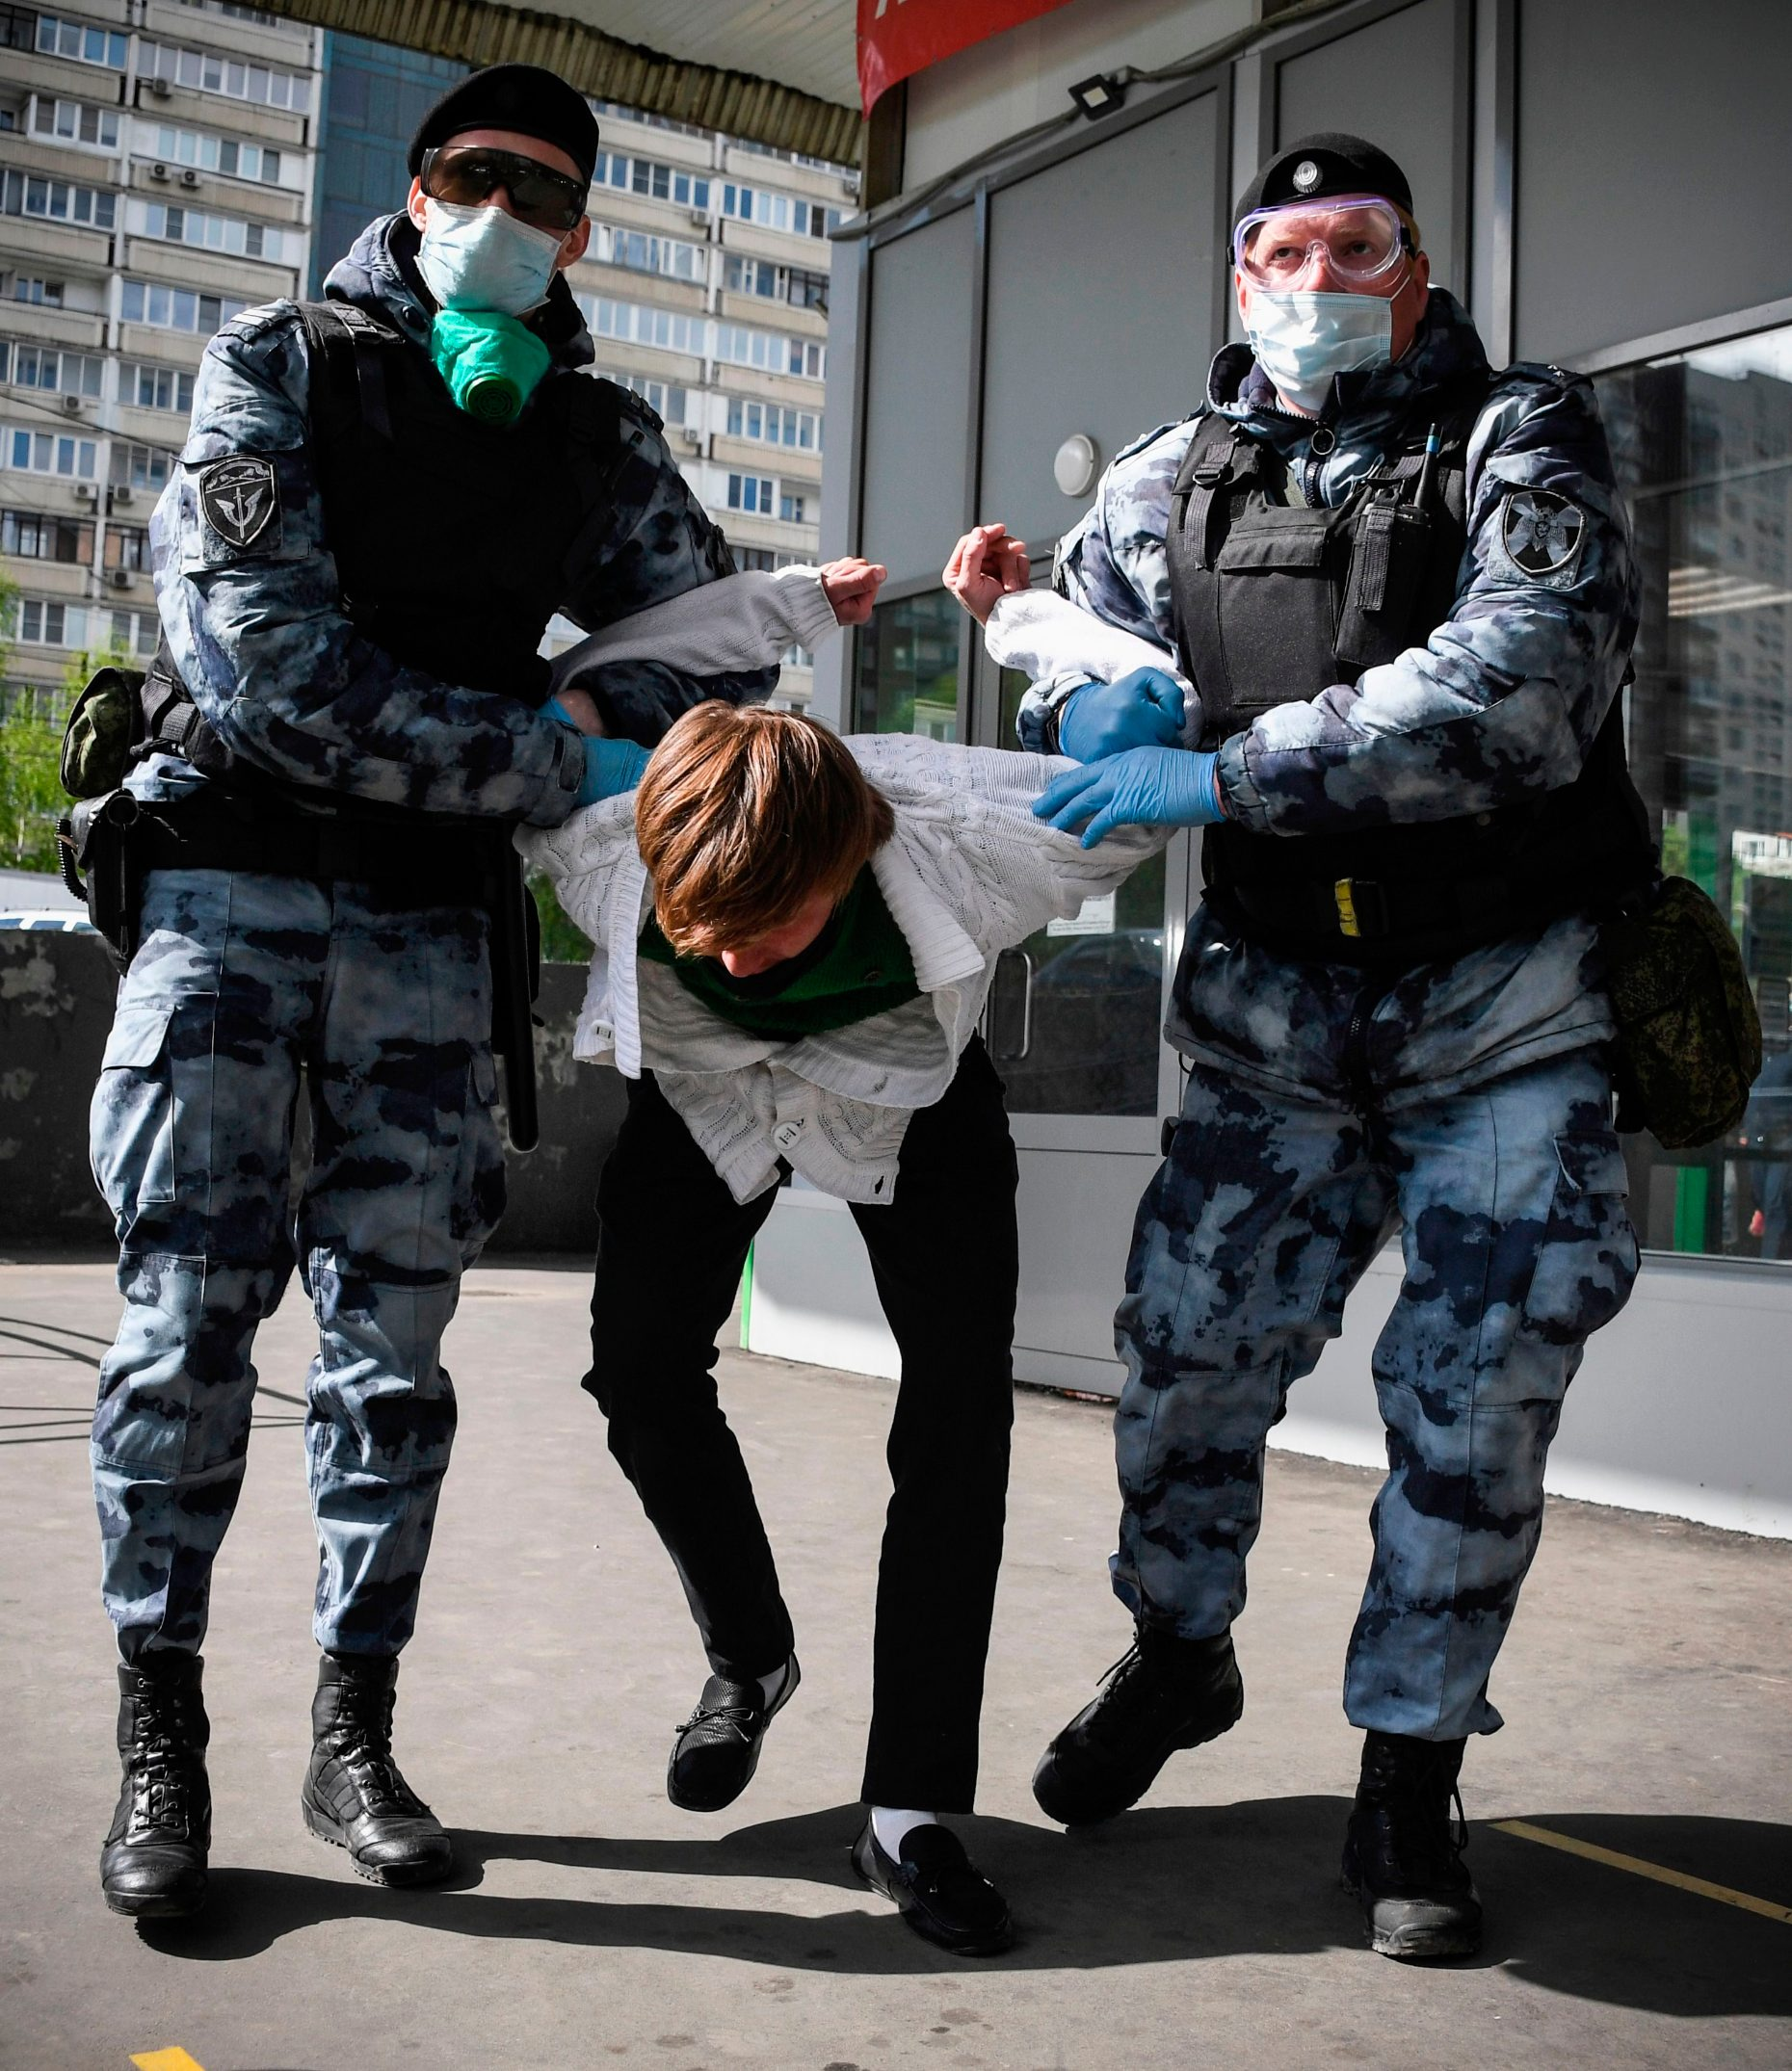 Russian serviceman of the Russian National Guard (Rosgvardia) detains a man in front of a supermarket in Moscow on May 13, 2020, amid the spread of the COVID-19 coronavirus. - To avoid an escalation in the number of infections, the city authorities have made it mandatory to wear gloves and a mask on public transport, shops and other pubic places, on pain of a fine of 5,000 rubles (about 63 euros). (Photo by Alexander NEMENOV / AFP)